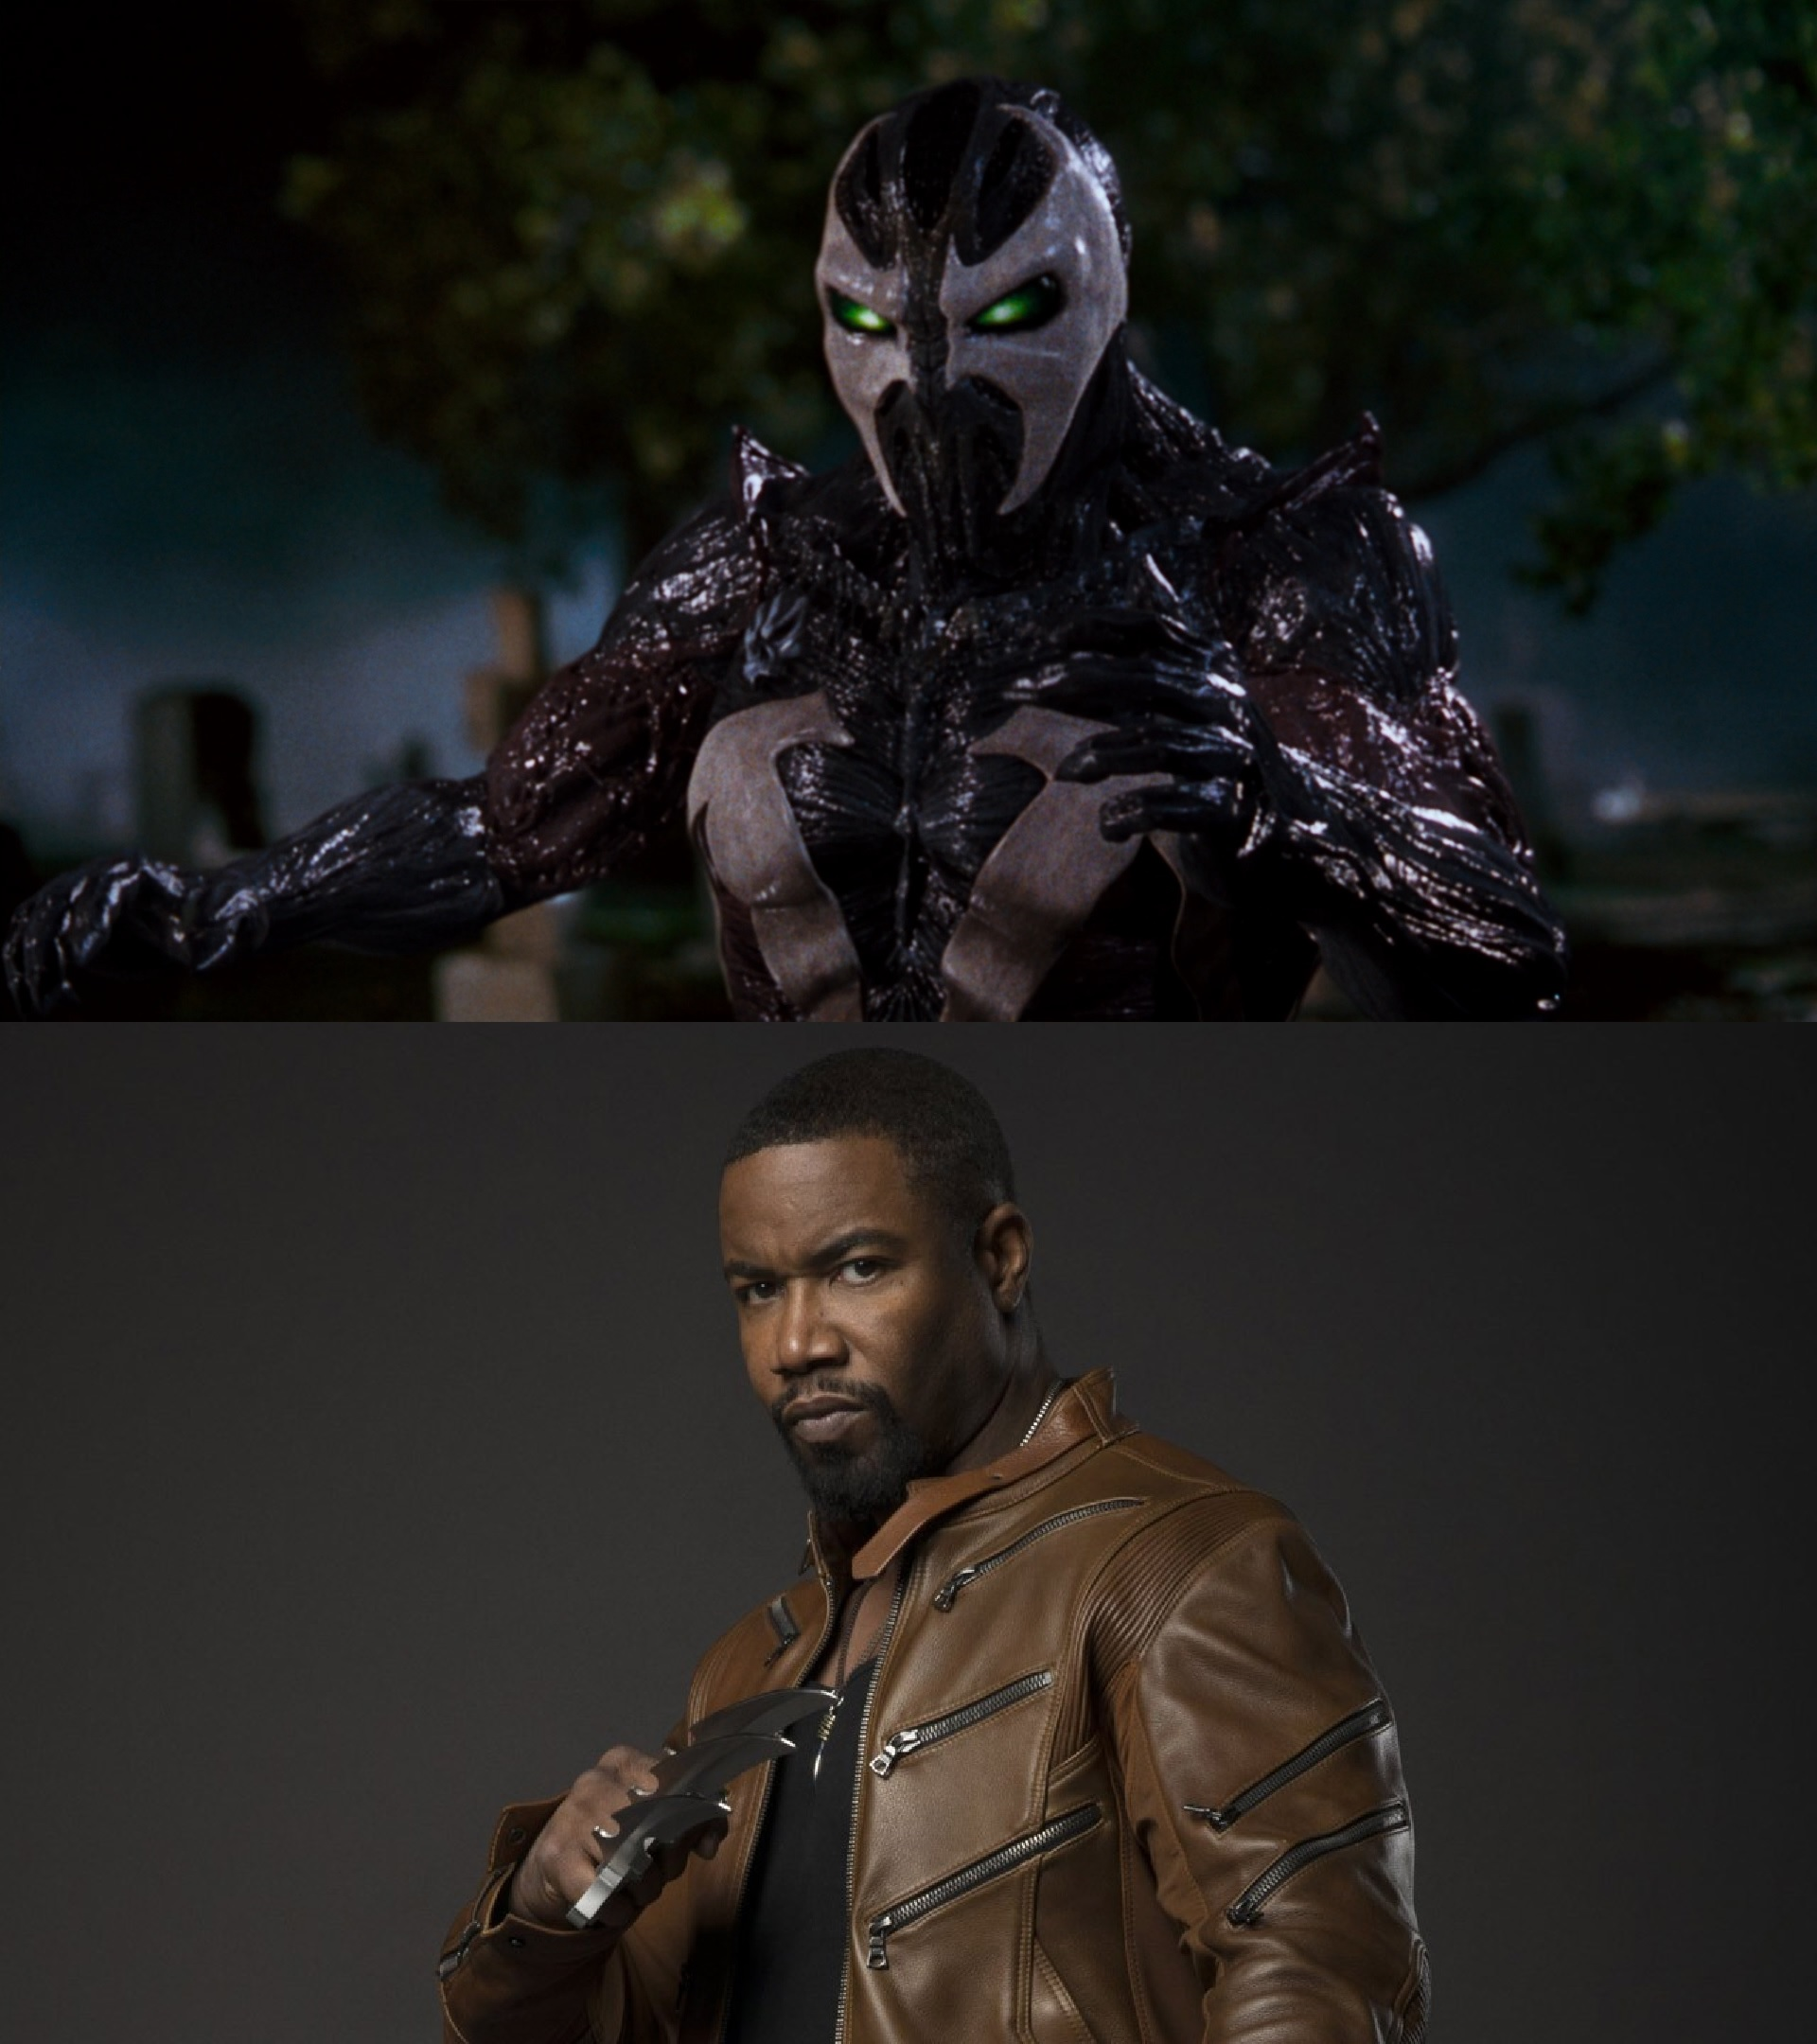 Michael Jai White as Spawn and Bronze Tiger - Actors who have played more than one superhero